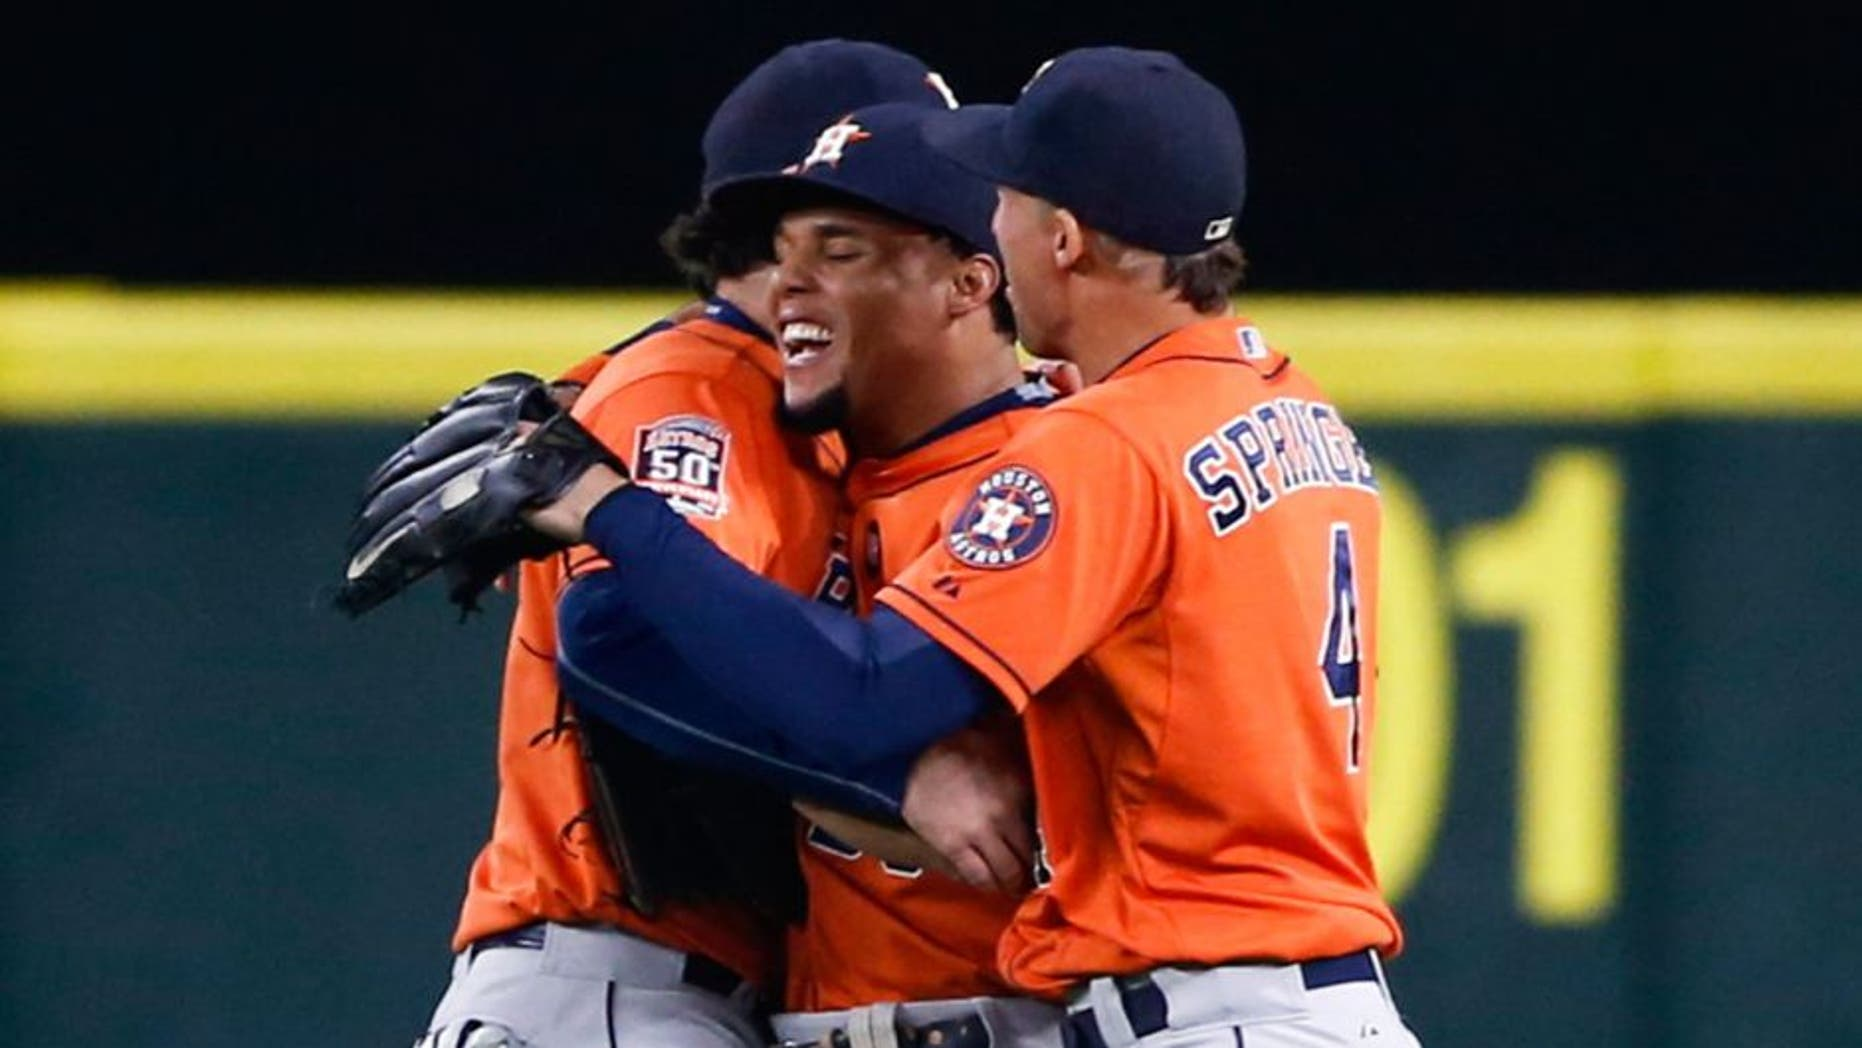 Sep 30, 2015; Seattle, WA, USA; Houston Astros center fielder Carlos Gomez (30) celebrates with left fielder Jake Marisnick (6) and right fielder George Springer (4) after making an outfield assist for a double play to end a 7-6 victory against the Seattle Mariners at Safeco Field. Mandatory Credit: Joe Nicholson-USA TODAY Sports